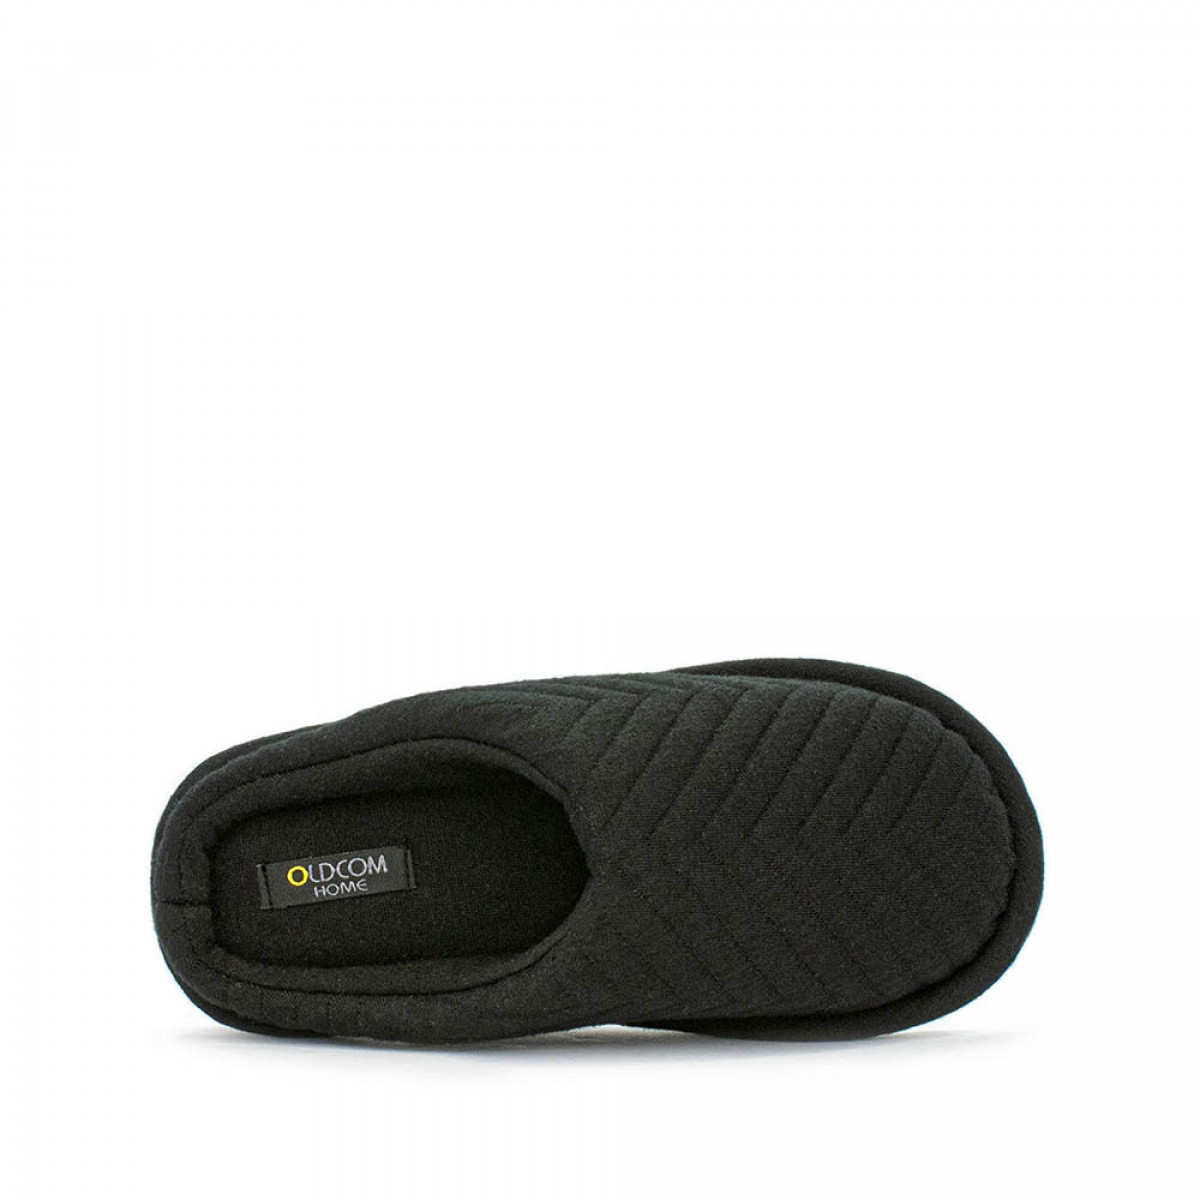 Kid's home slippers FAMILY, Black